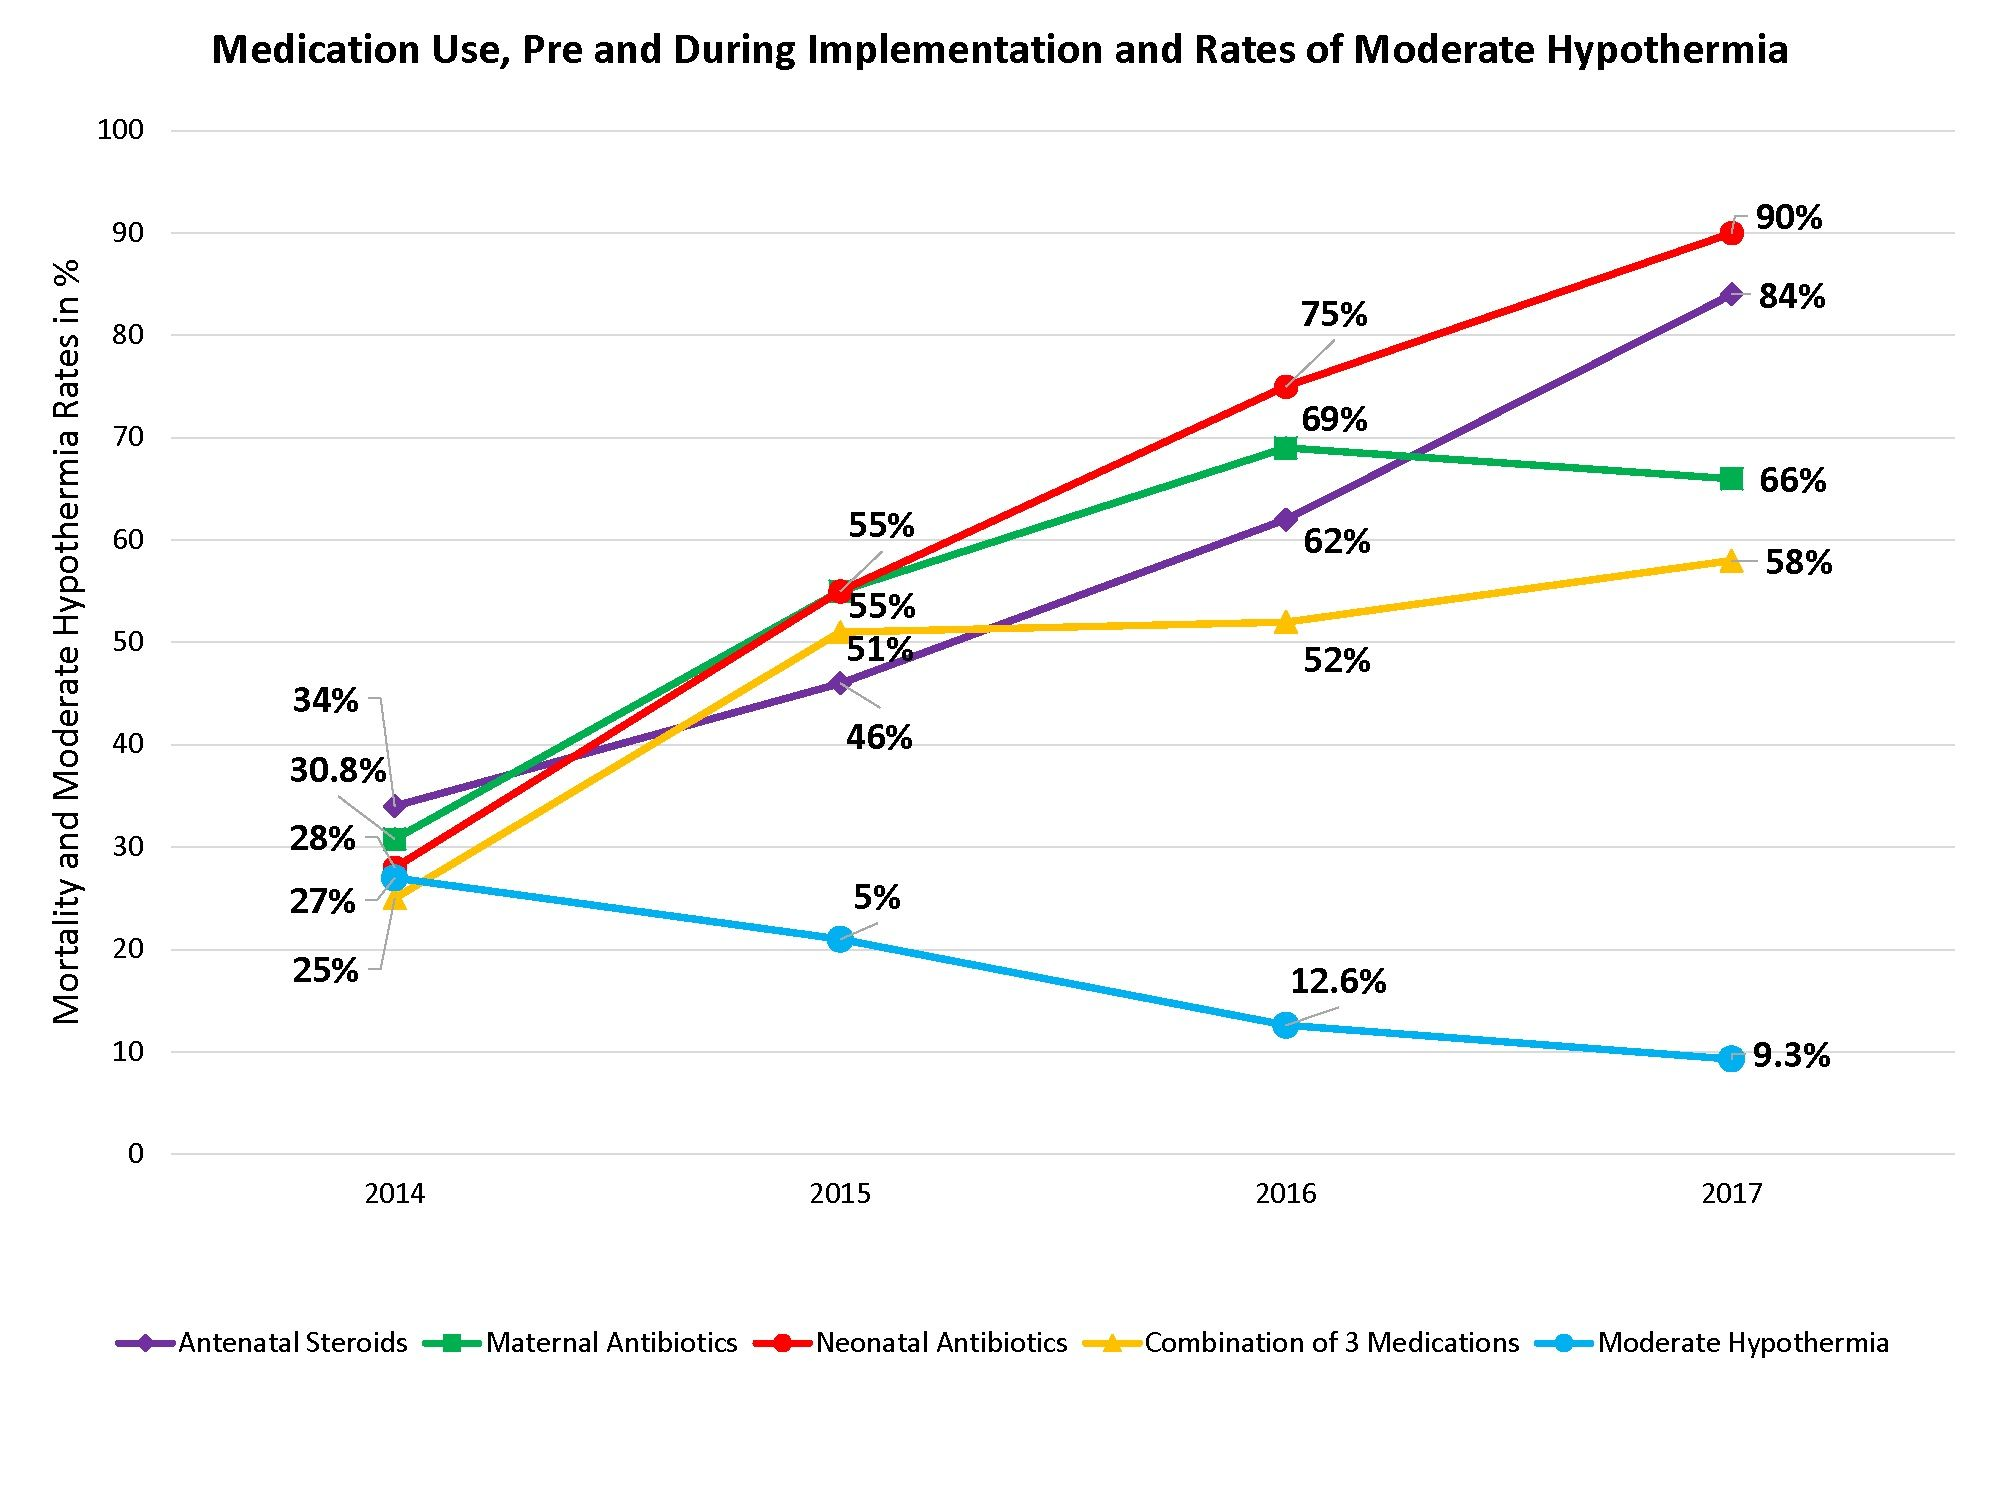 - Medication Use Pre and During Implementation and Rates of Moderate Hypothermia